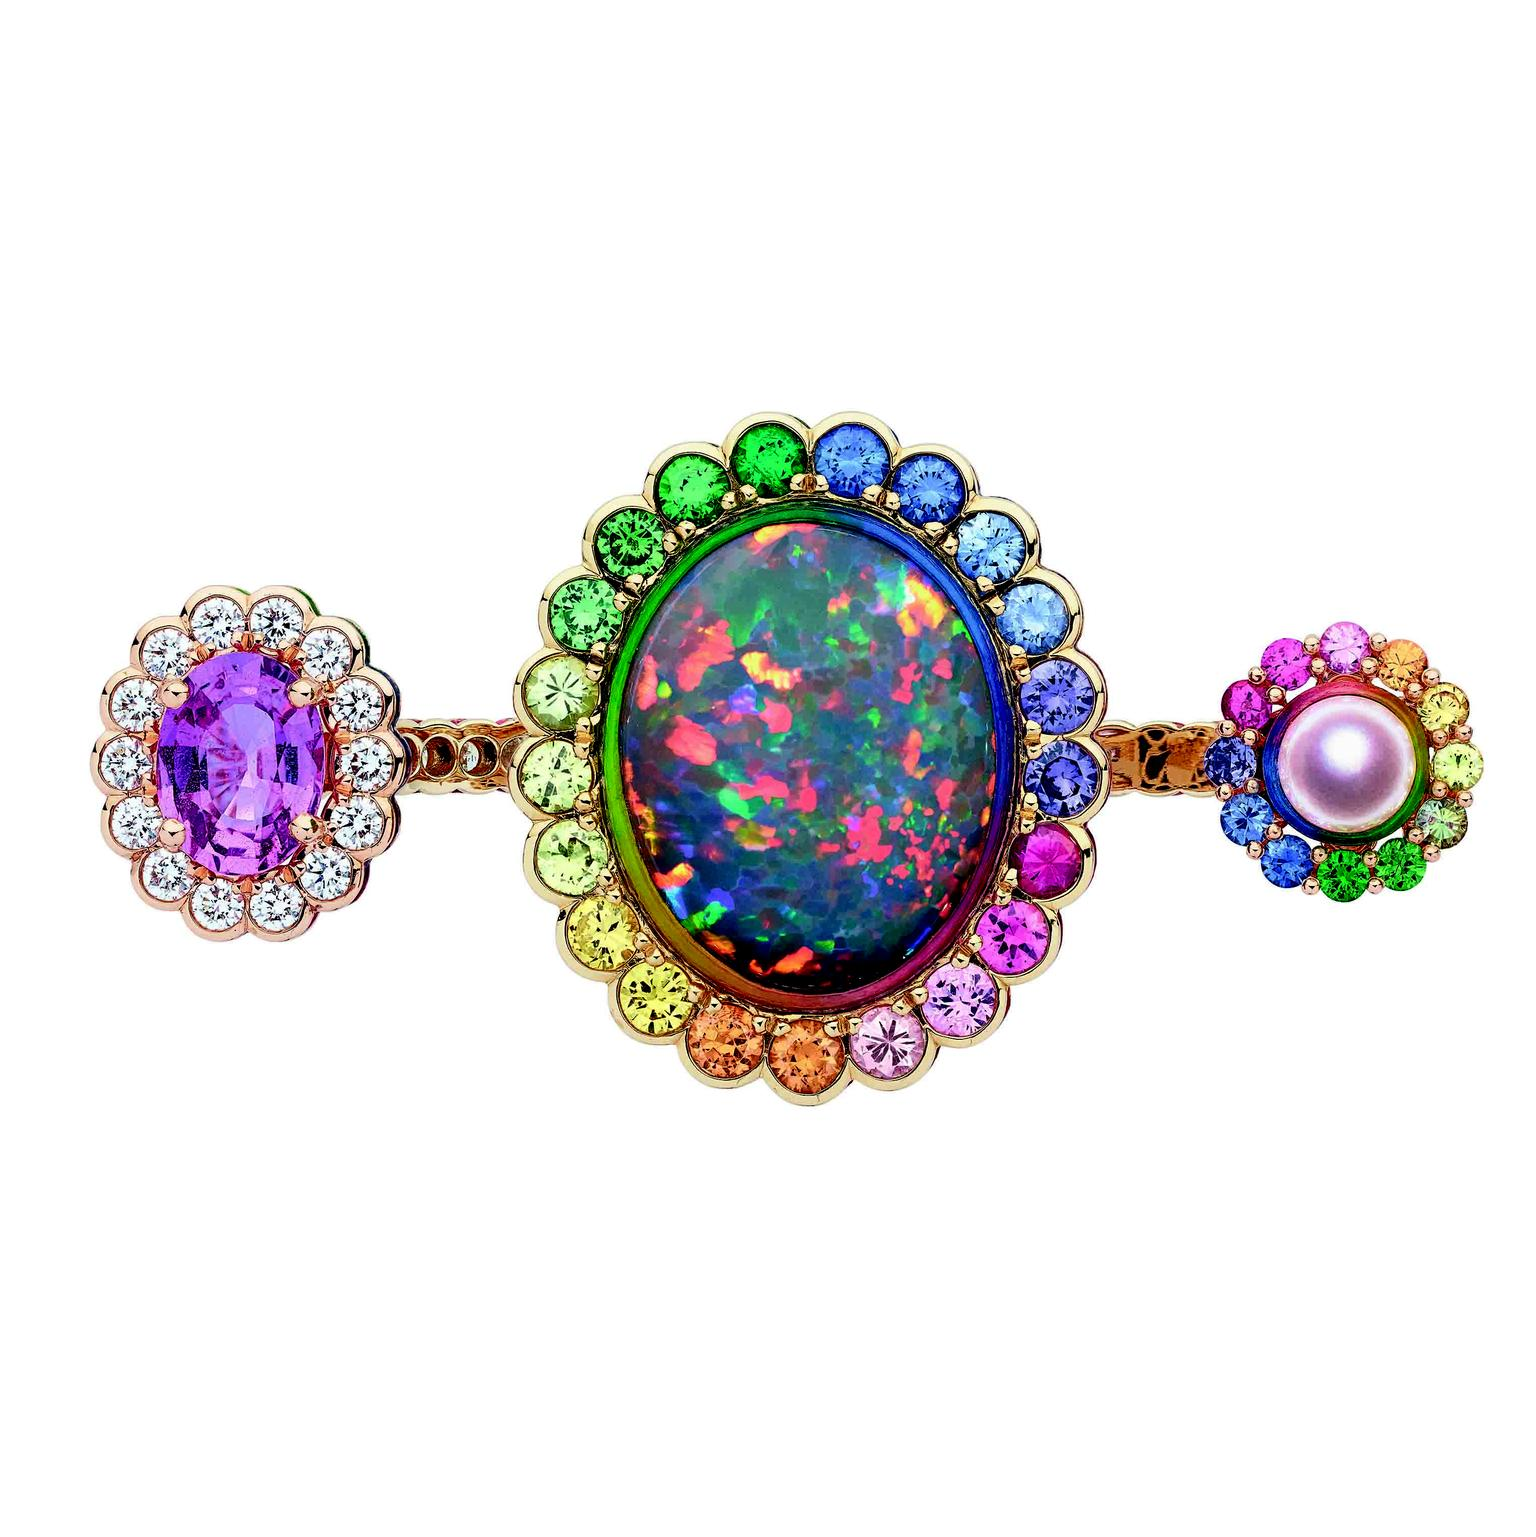 Dior et Moi black opal double ring